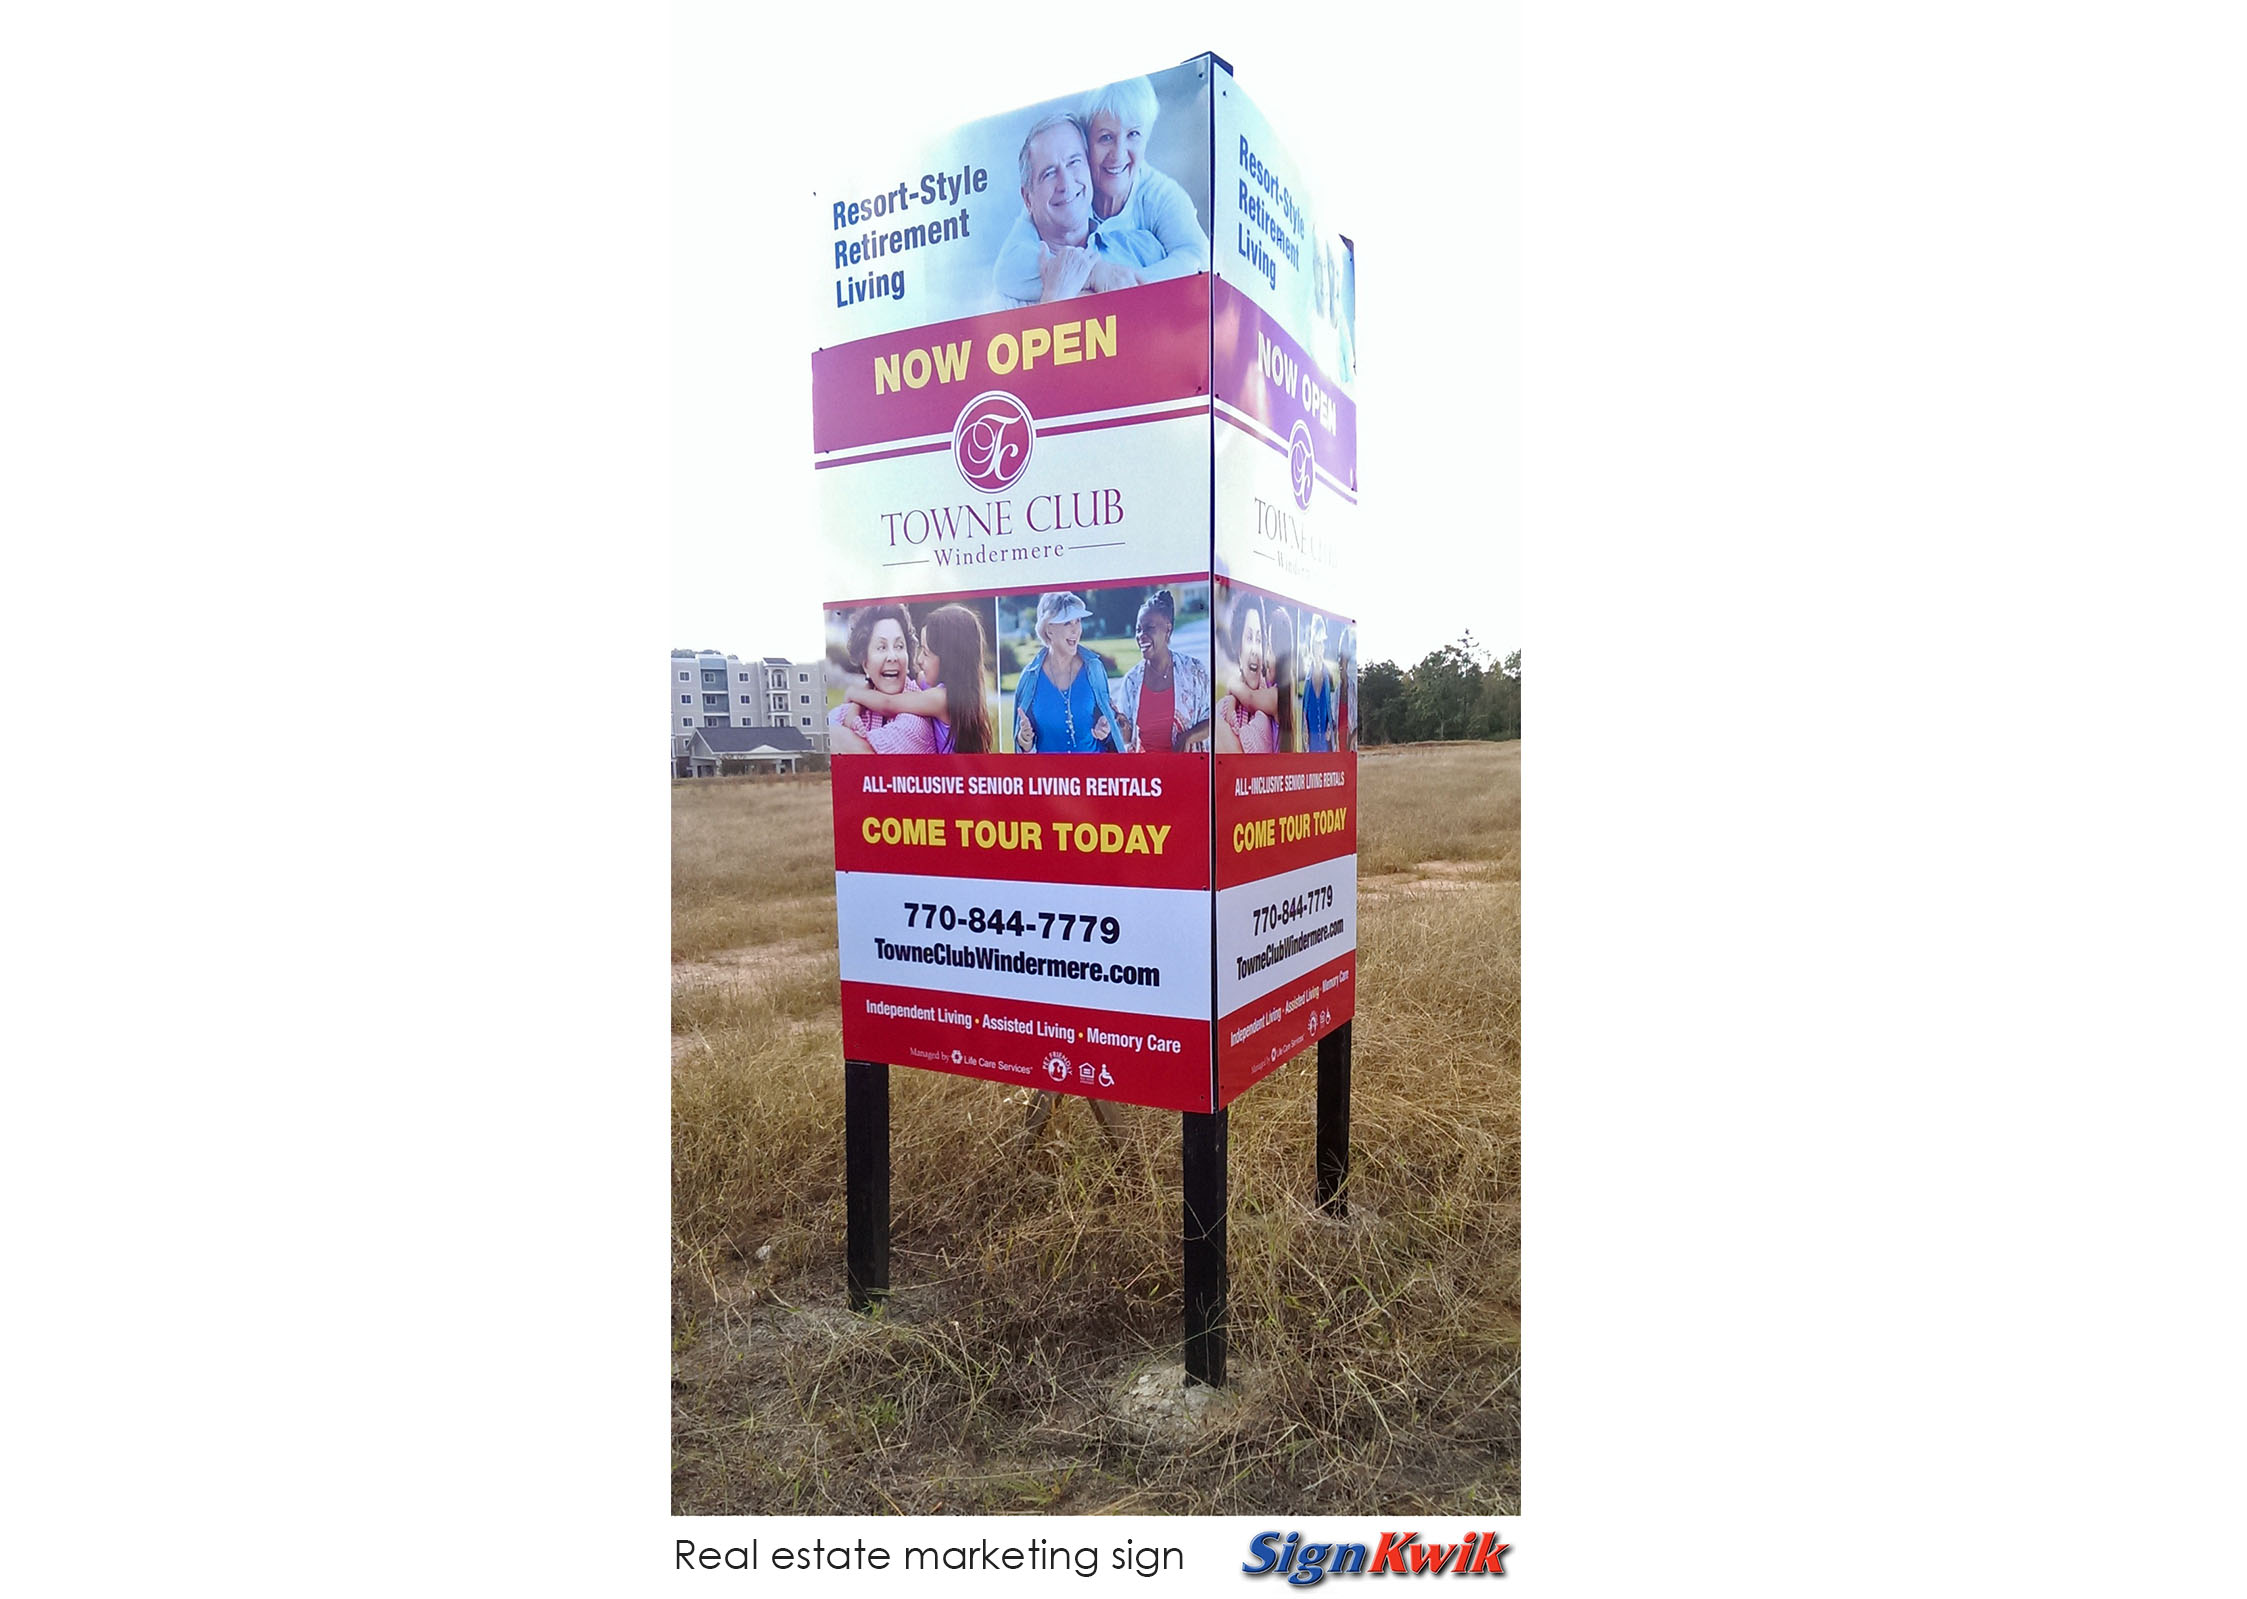 real-estate-marketing-sign.jpg